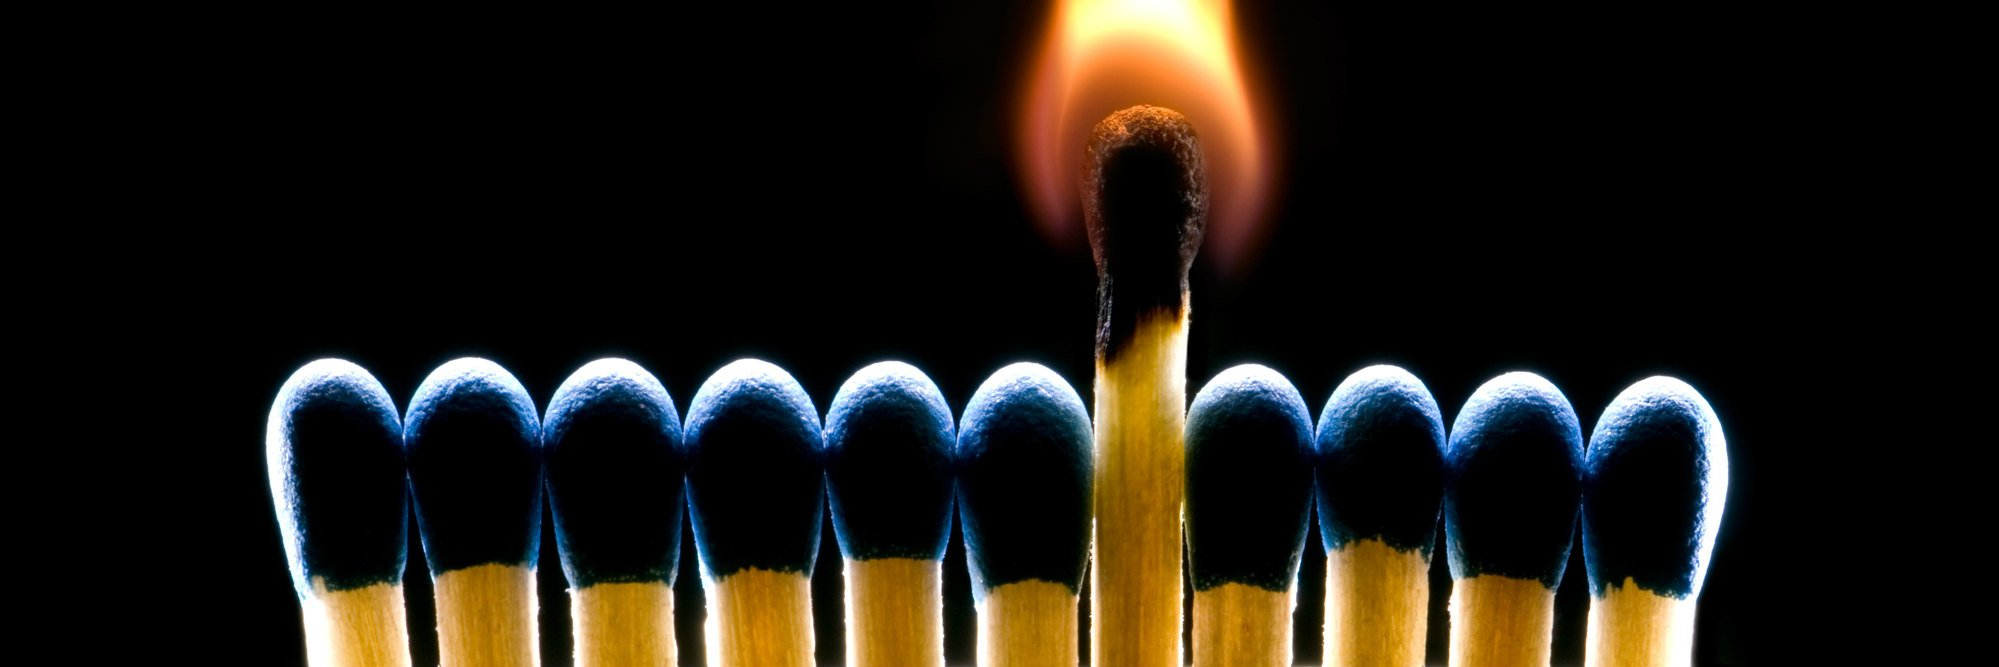 Many dark blue matches on a black background (one match burns).